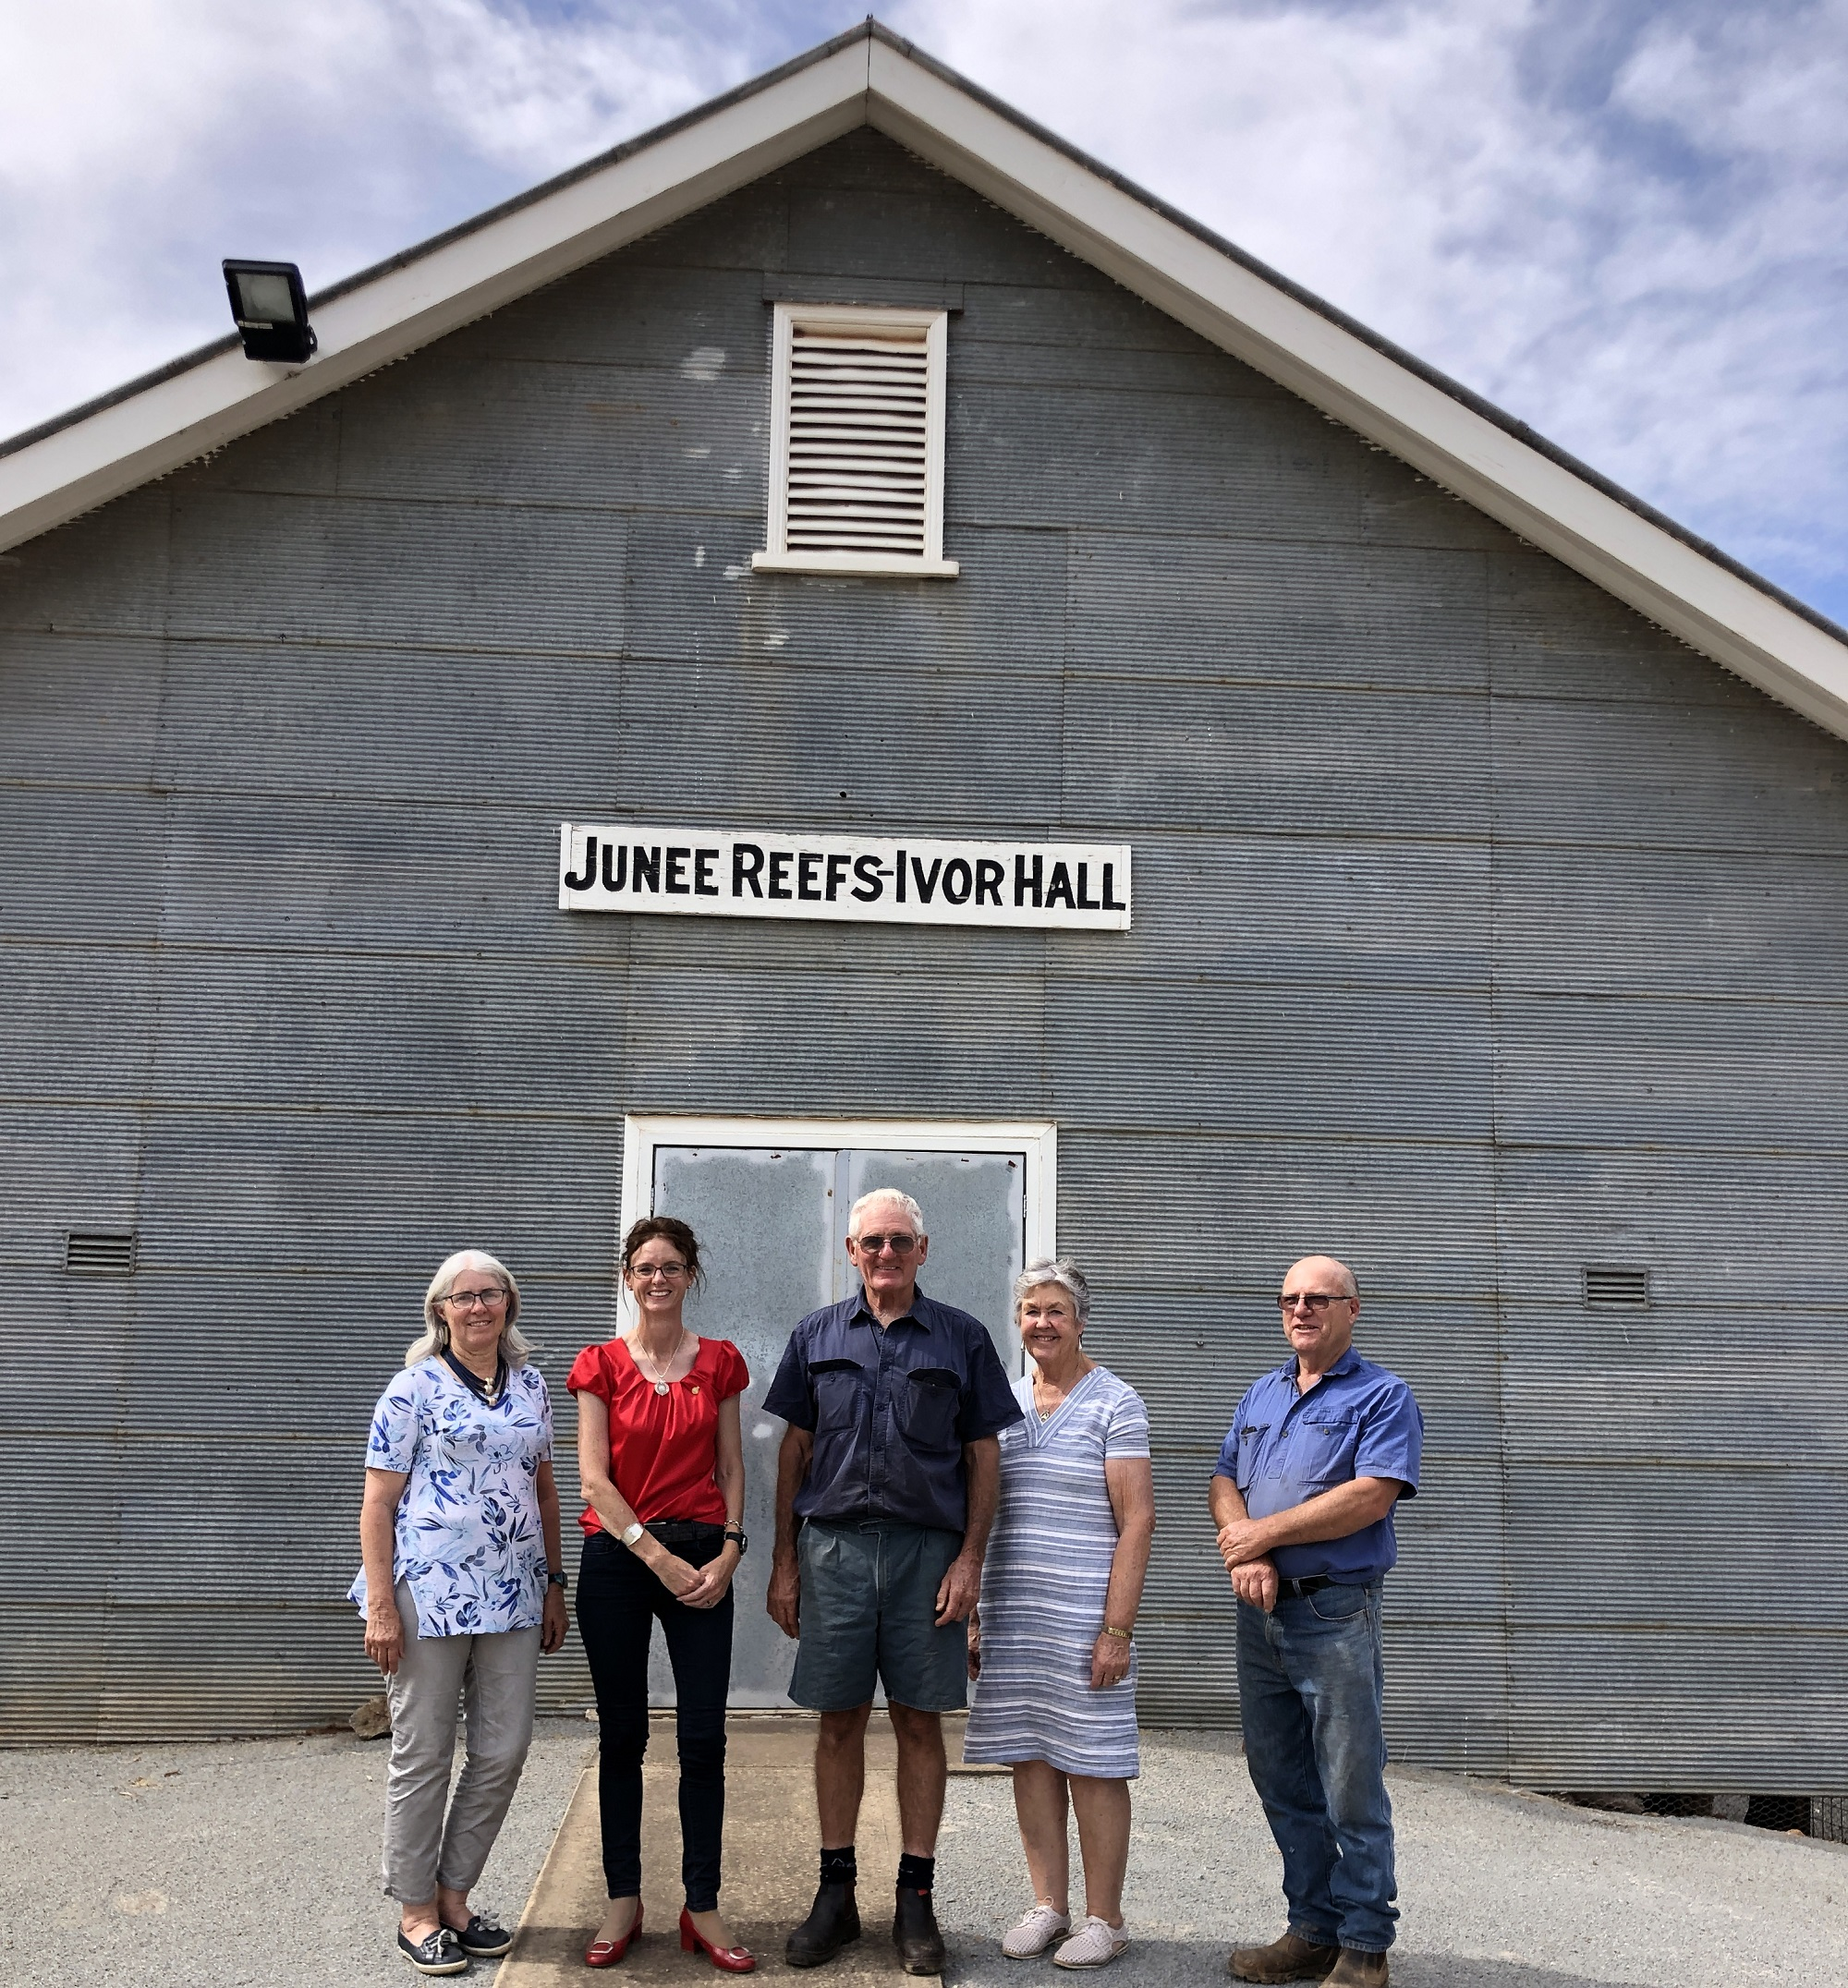 Janice Brabin, Steph Cooke, George Barbin, Margaret Drum and Robert Hillam stand in front of a metal wall with a sign above them reading Junee Reefs Ivor Hall.